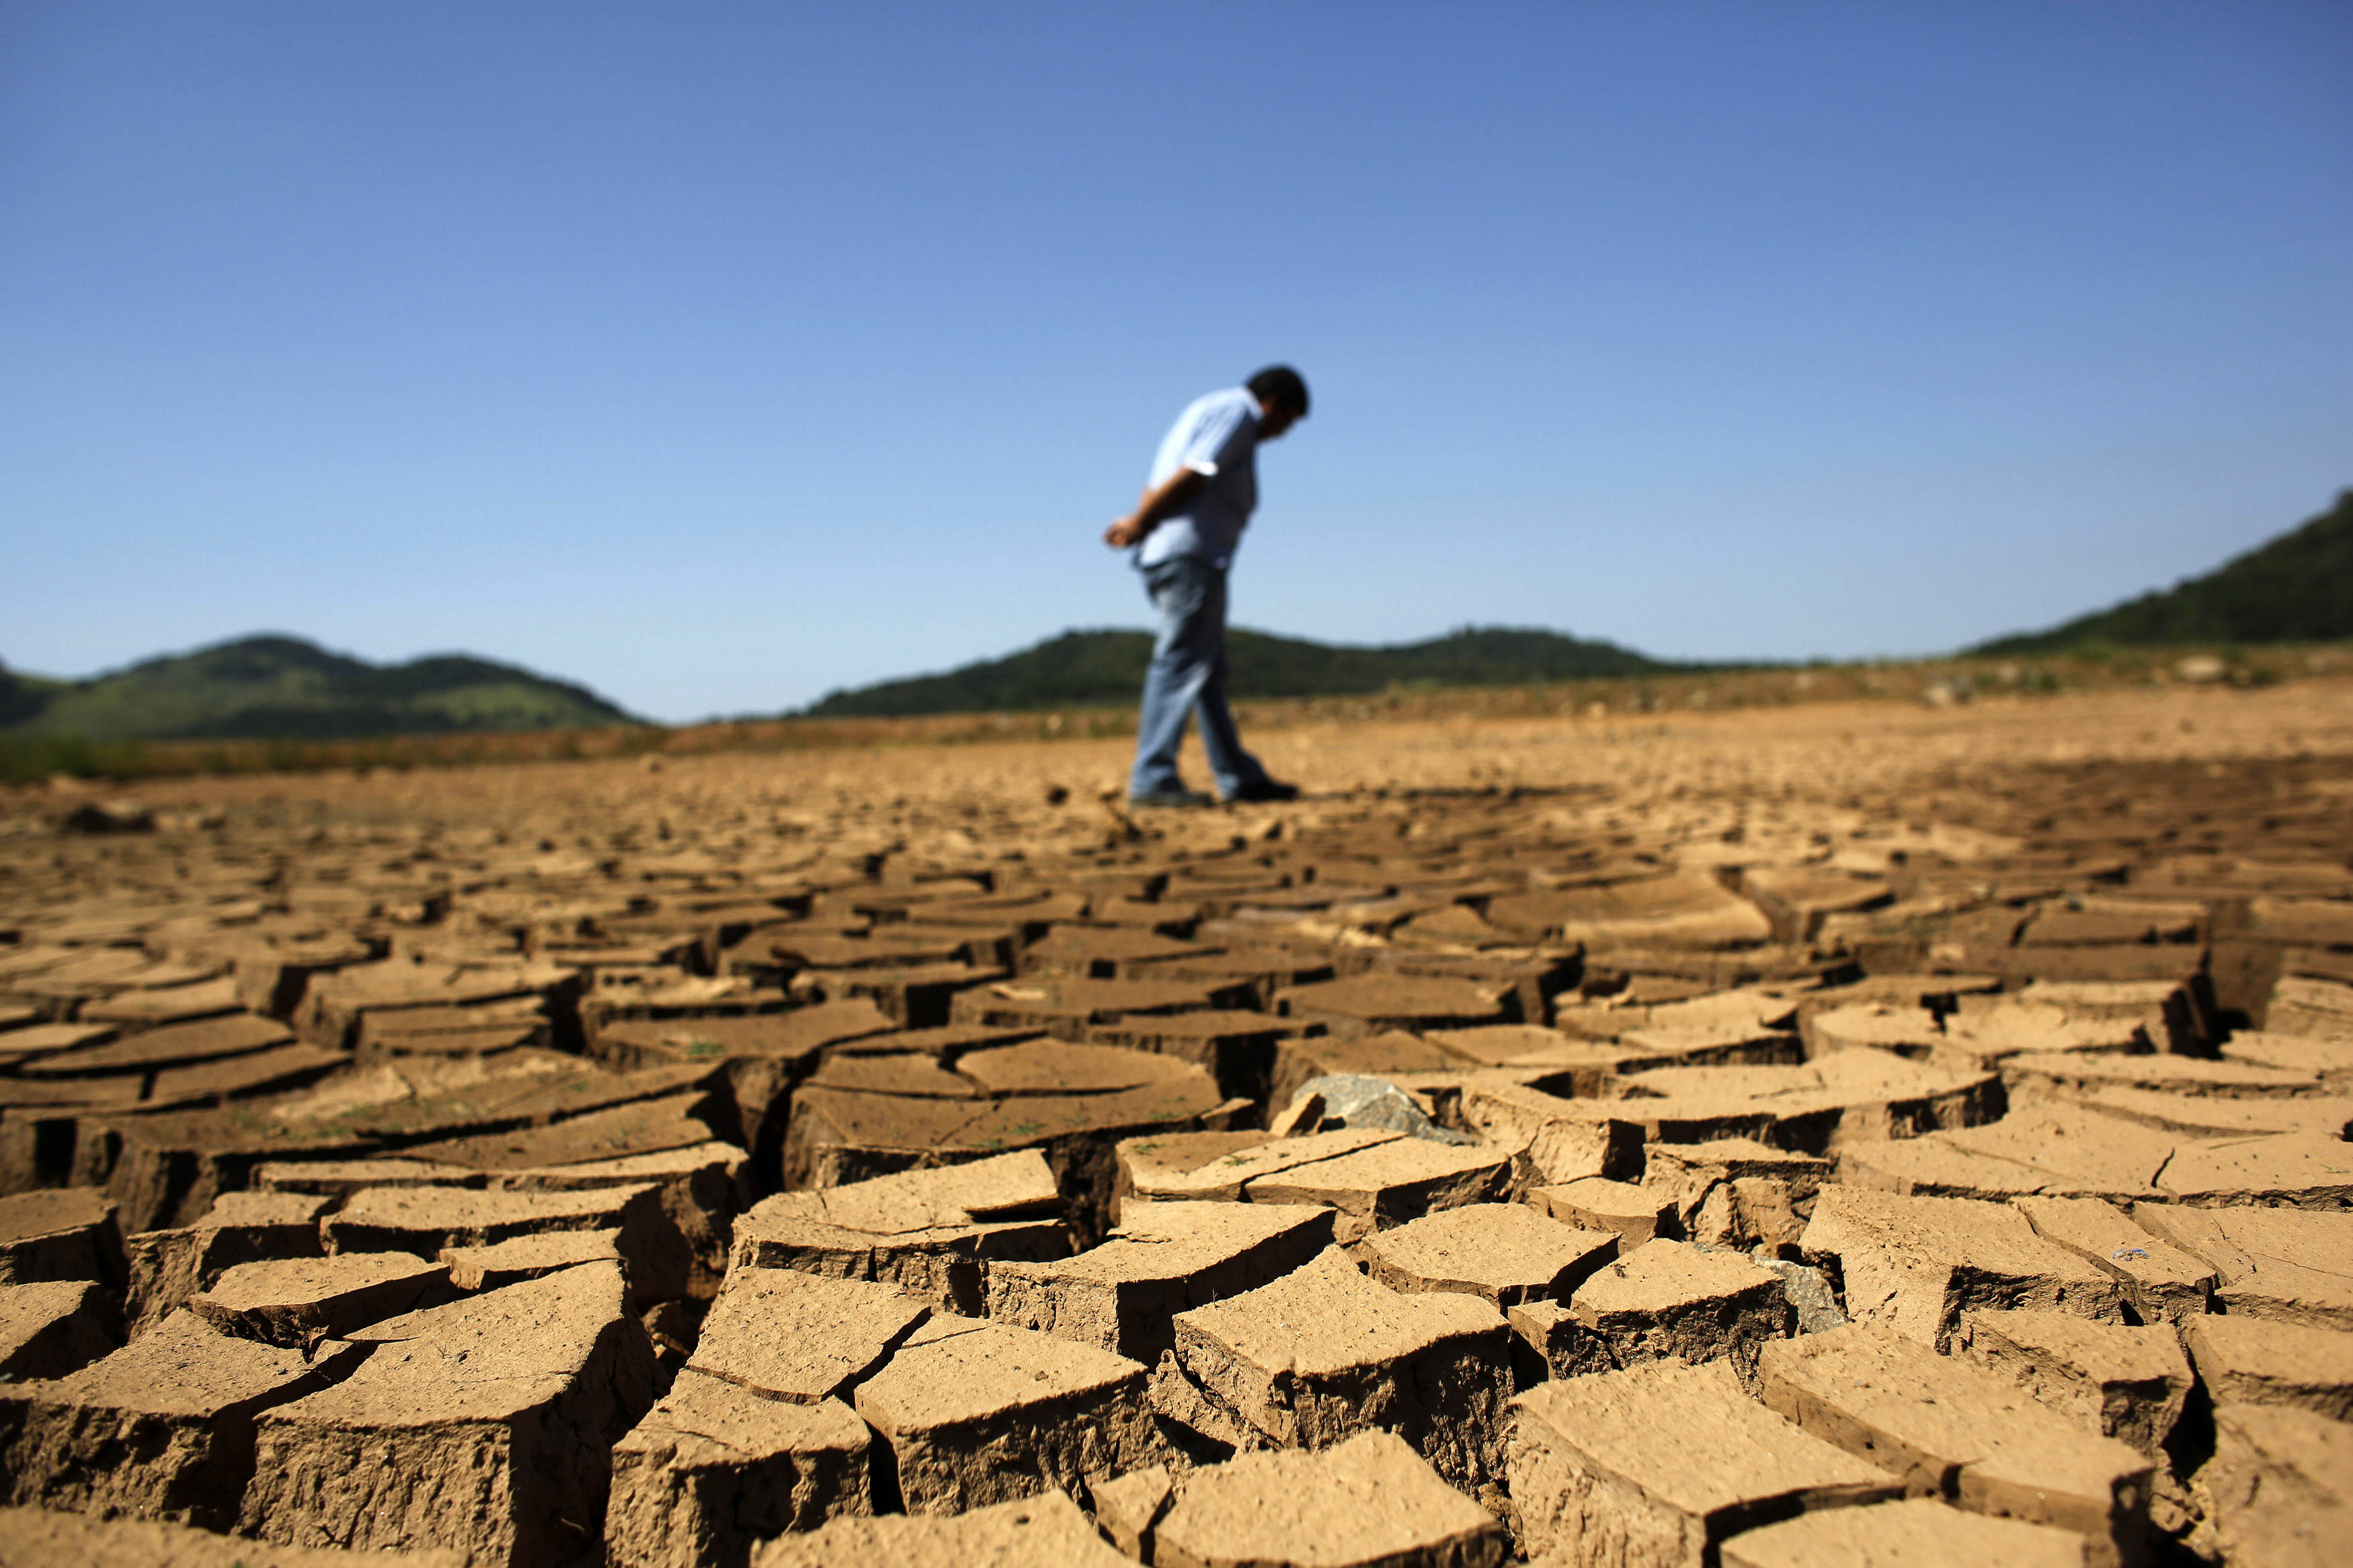 a worker of the Brazilian enterprise of Sao Paulo state, that provides water and sewage services to residential, commercial and industrial areas looks at the cracked ground of Jaguary dam in Braganca Paulista, 100 km from Sao Paulo January 31, 2014. This has been the hottest January on record in parts of Brazil, and the heat plus a severe drought has fanned fears of water shortages, crop damage, and higher electricity bills